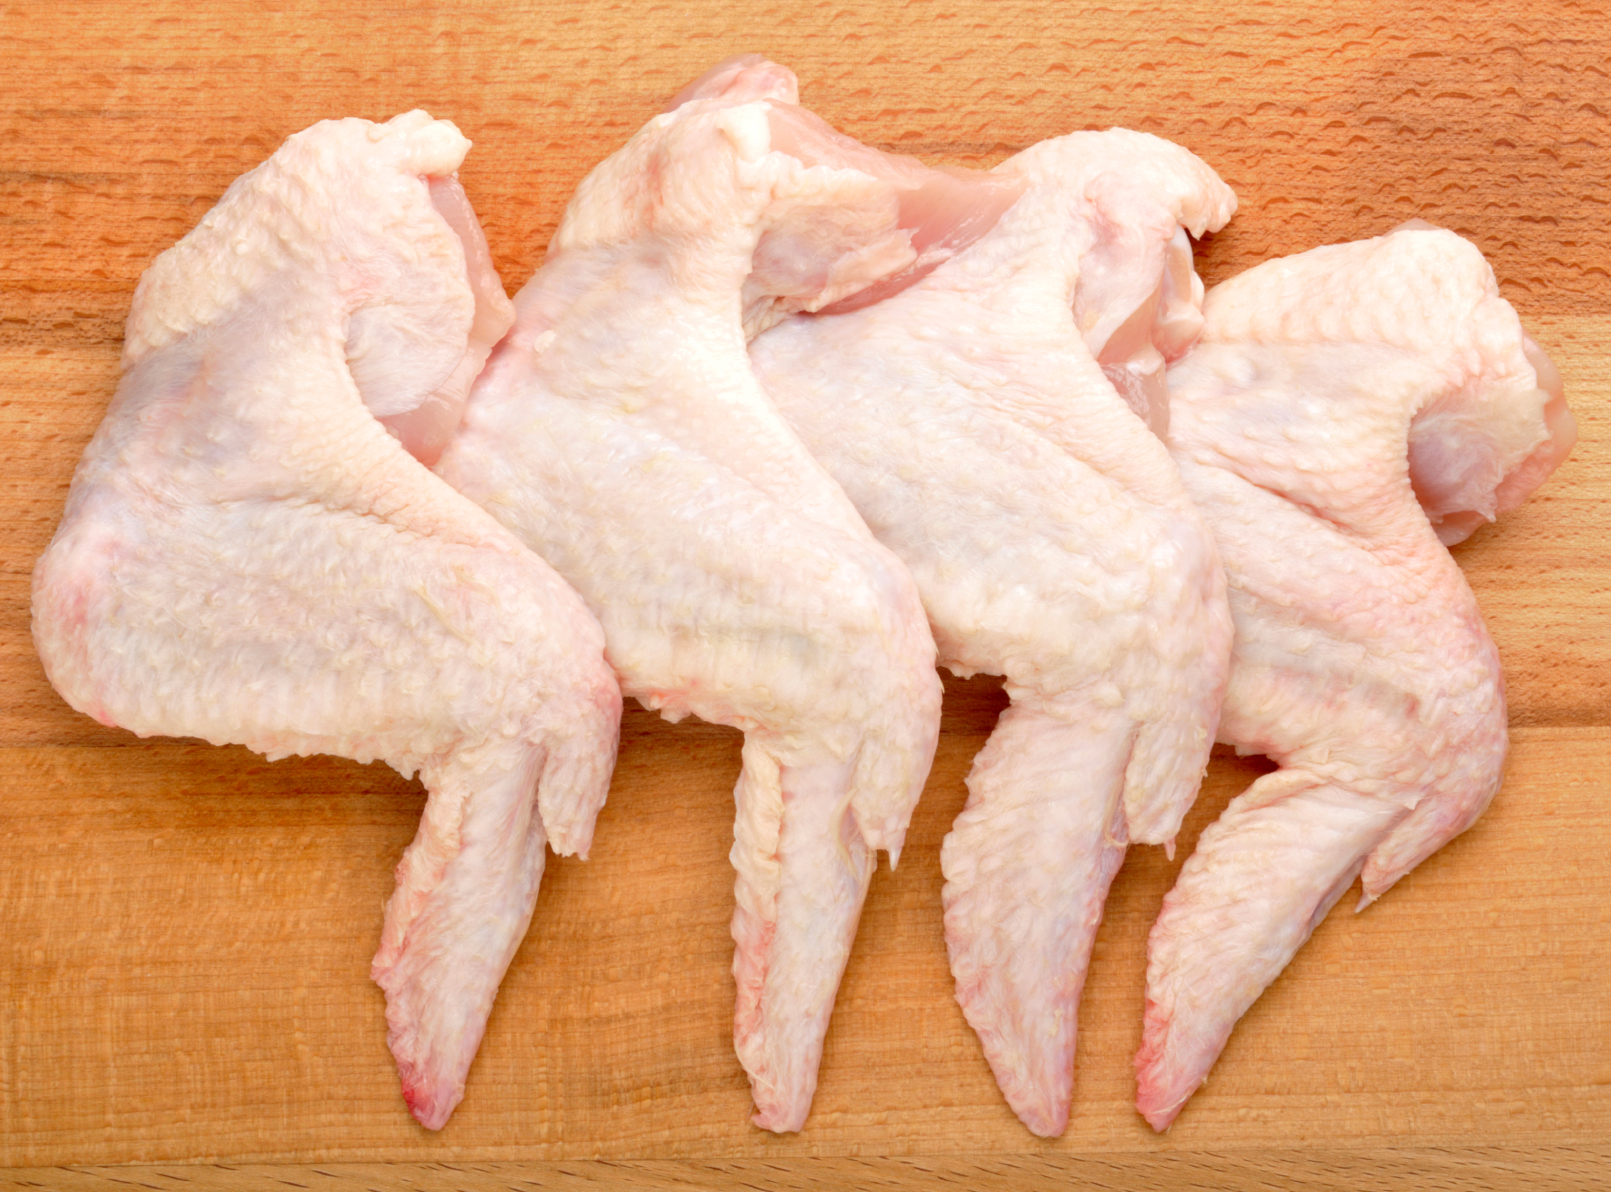 There are many ways to cook chicken wings, partially because they are a versatile and inexpensive option for feeding large groups of people. Nearly all cooking methods can be used for chicken wings, in part because they are relatively small cuts of meat.